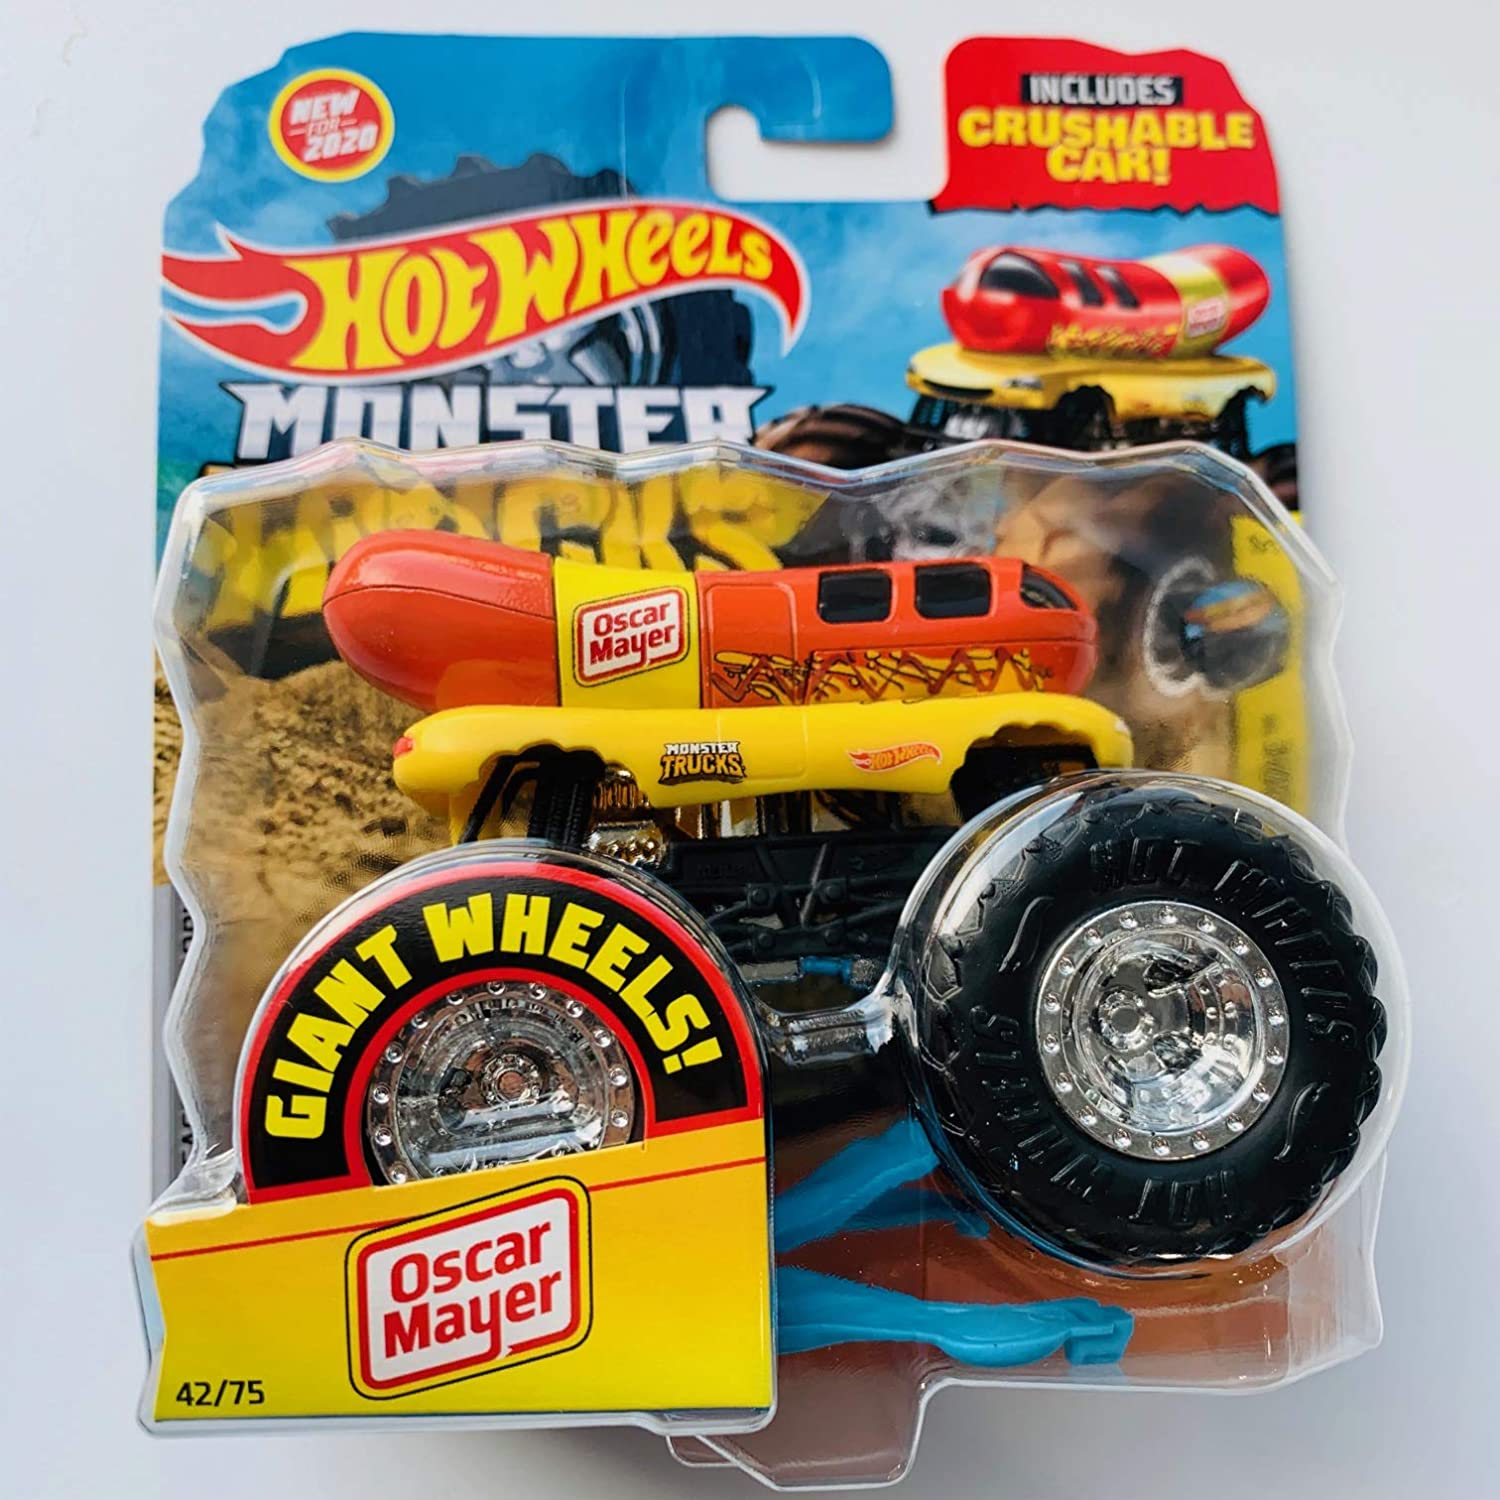 Amazon Com Hot Wheels Monster Trucks 2020 Giant Wheels 1 64 Scale Oscar Mayer With Crushable Car Toys Games